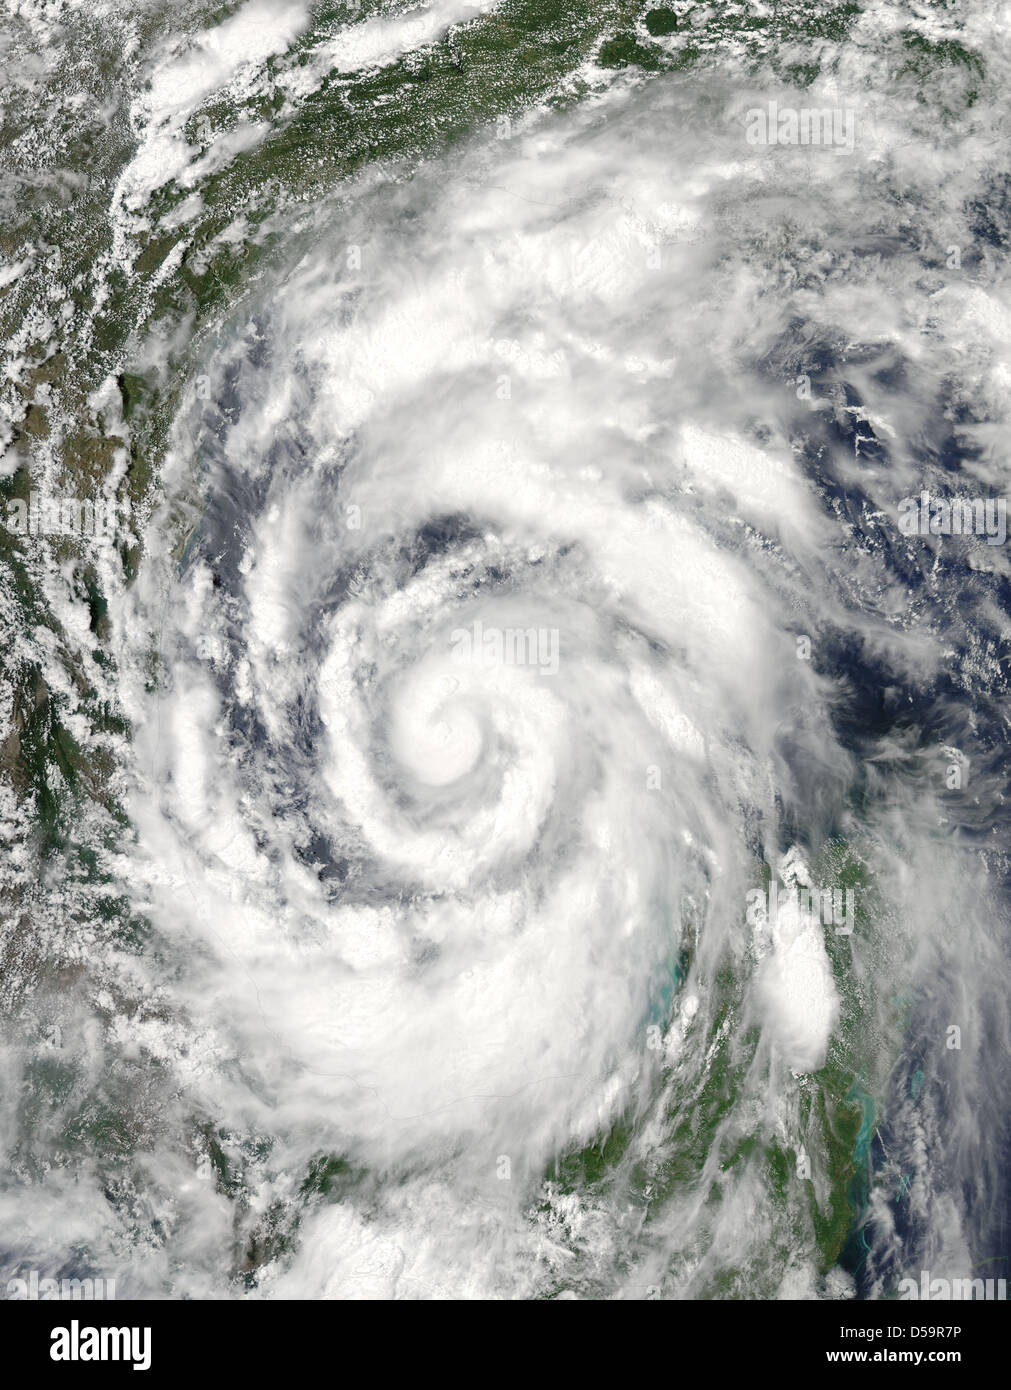 Handout photo from NASA made on 29 June 2010 showing Hurricane Alex as it strengthened over in the Gulf of Mexico - Stock Image